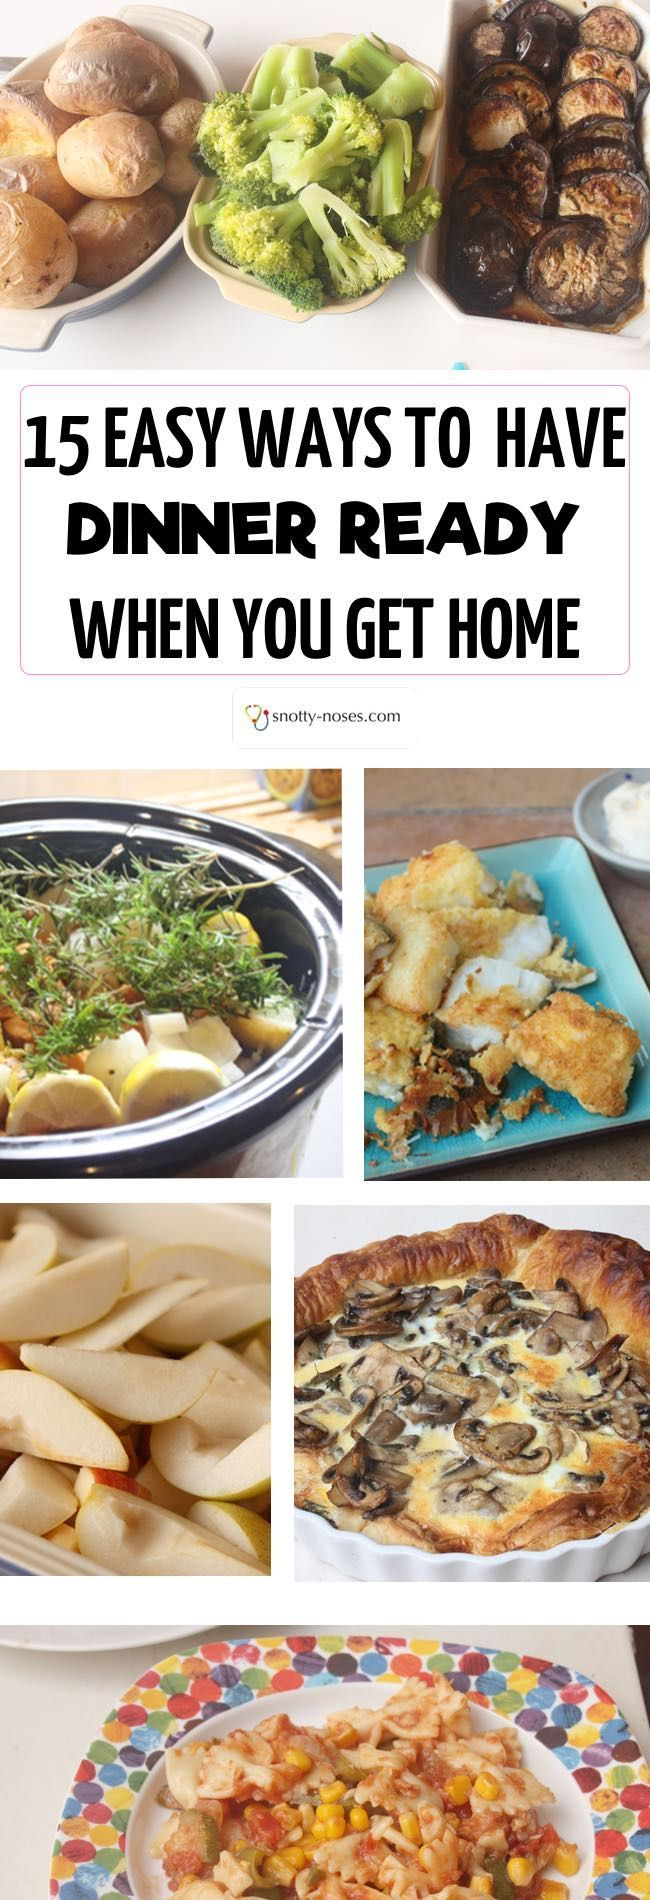 12 Easy Ways to Have Dinner Ready When you get Home